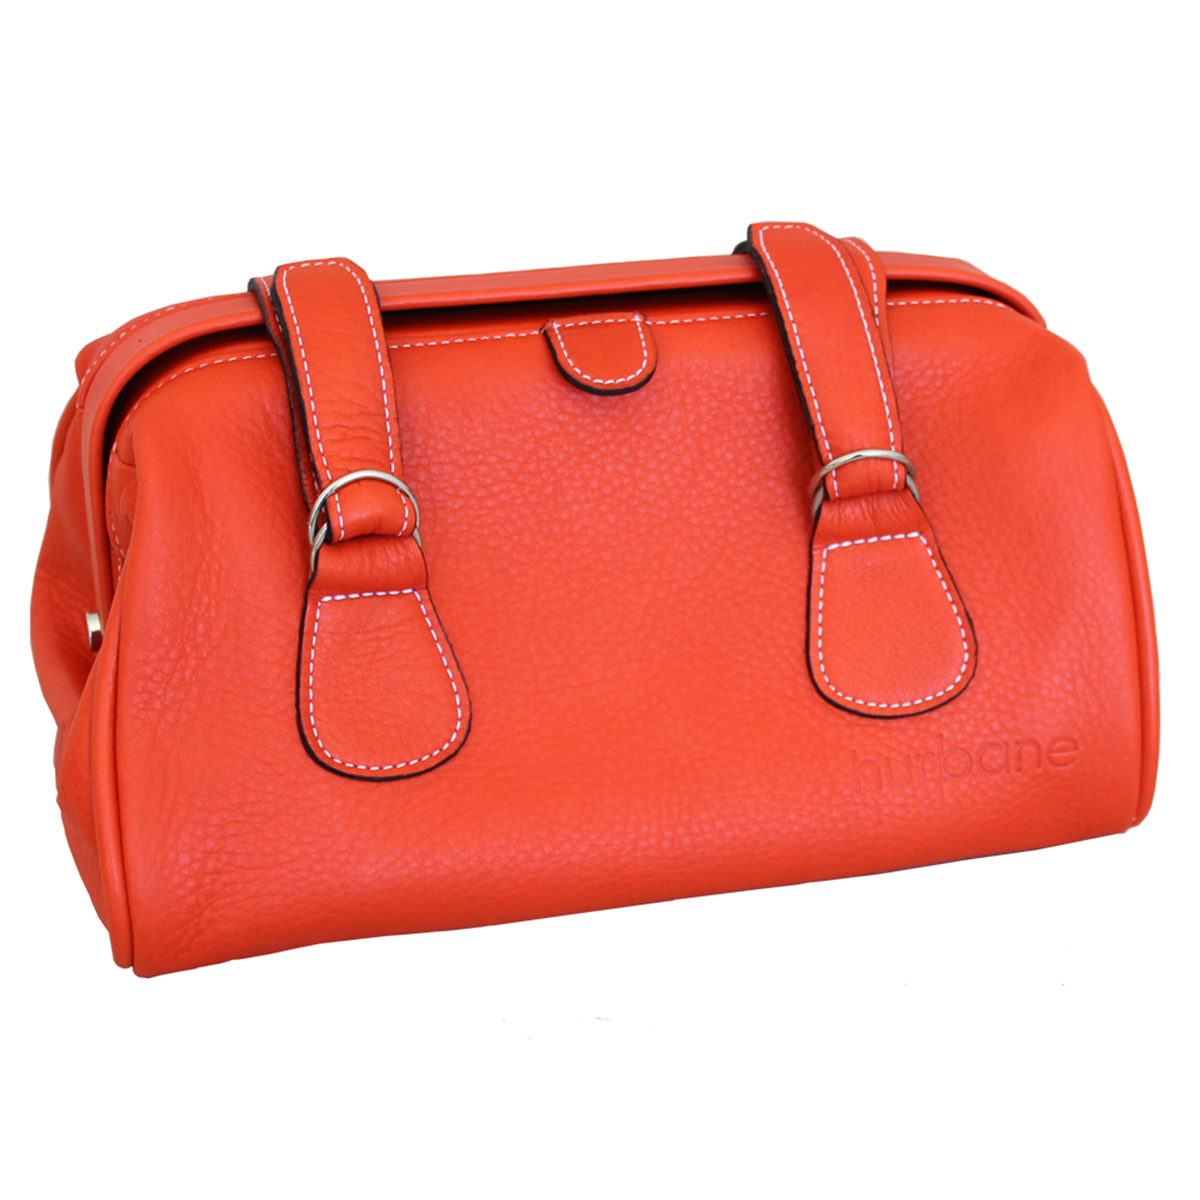 trousse de toilette besace en cuir orange le site du cuir